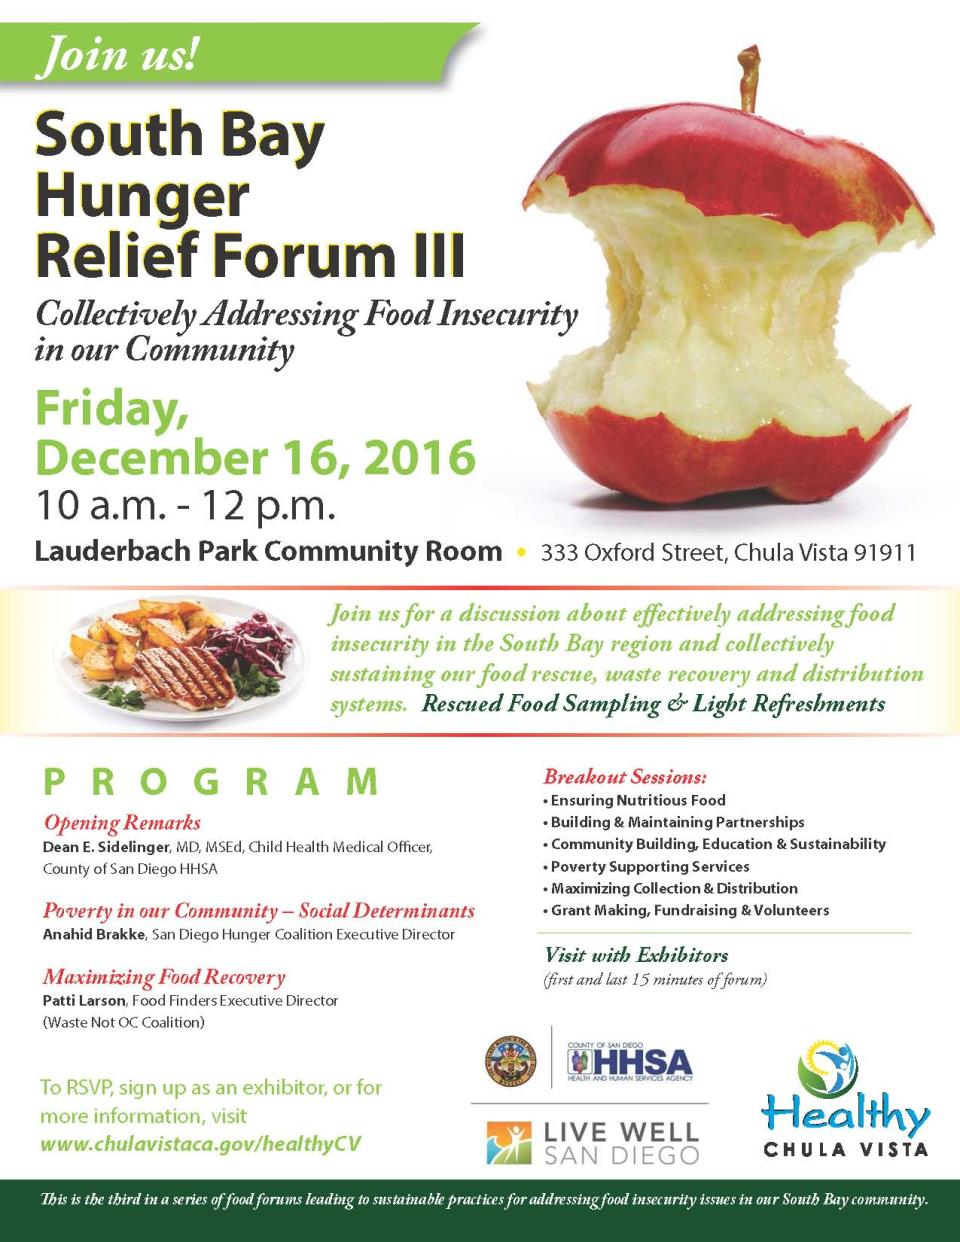 South Bay Hunger Relief Forum III